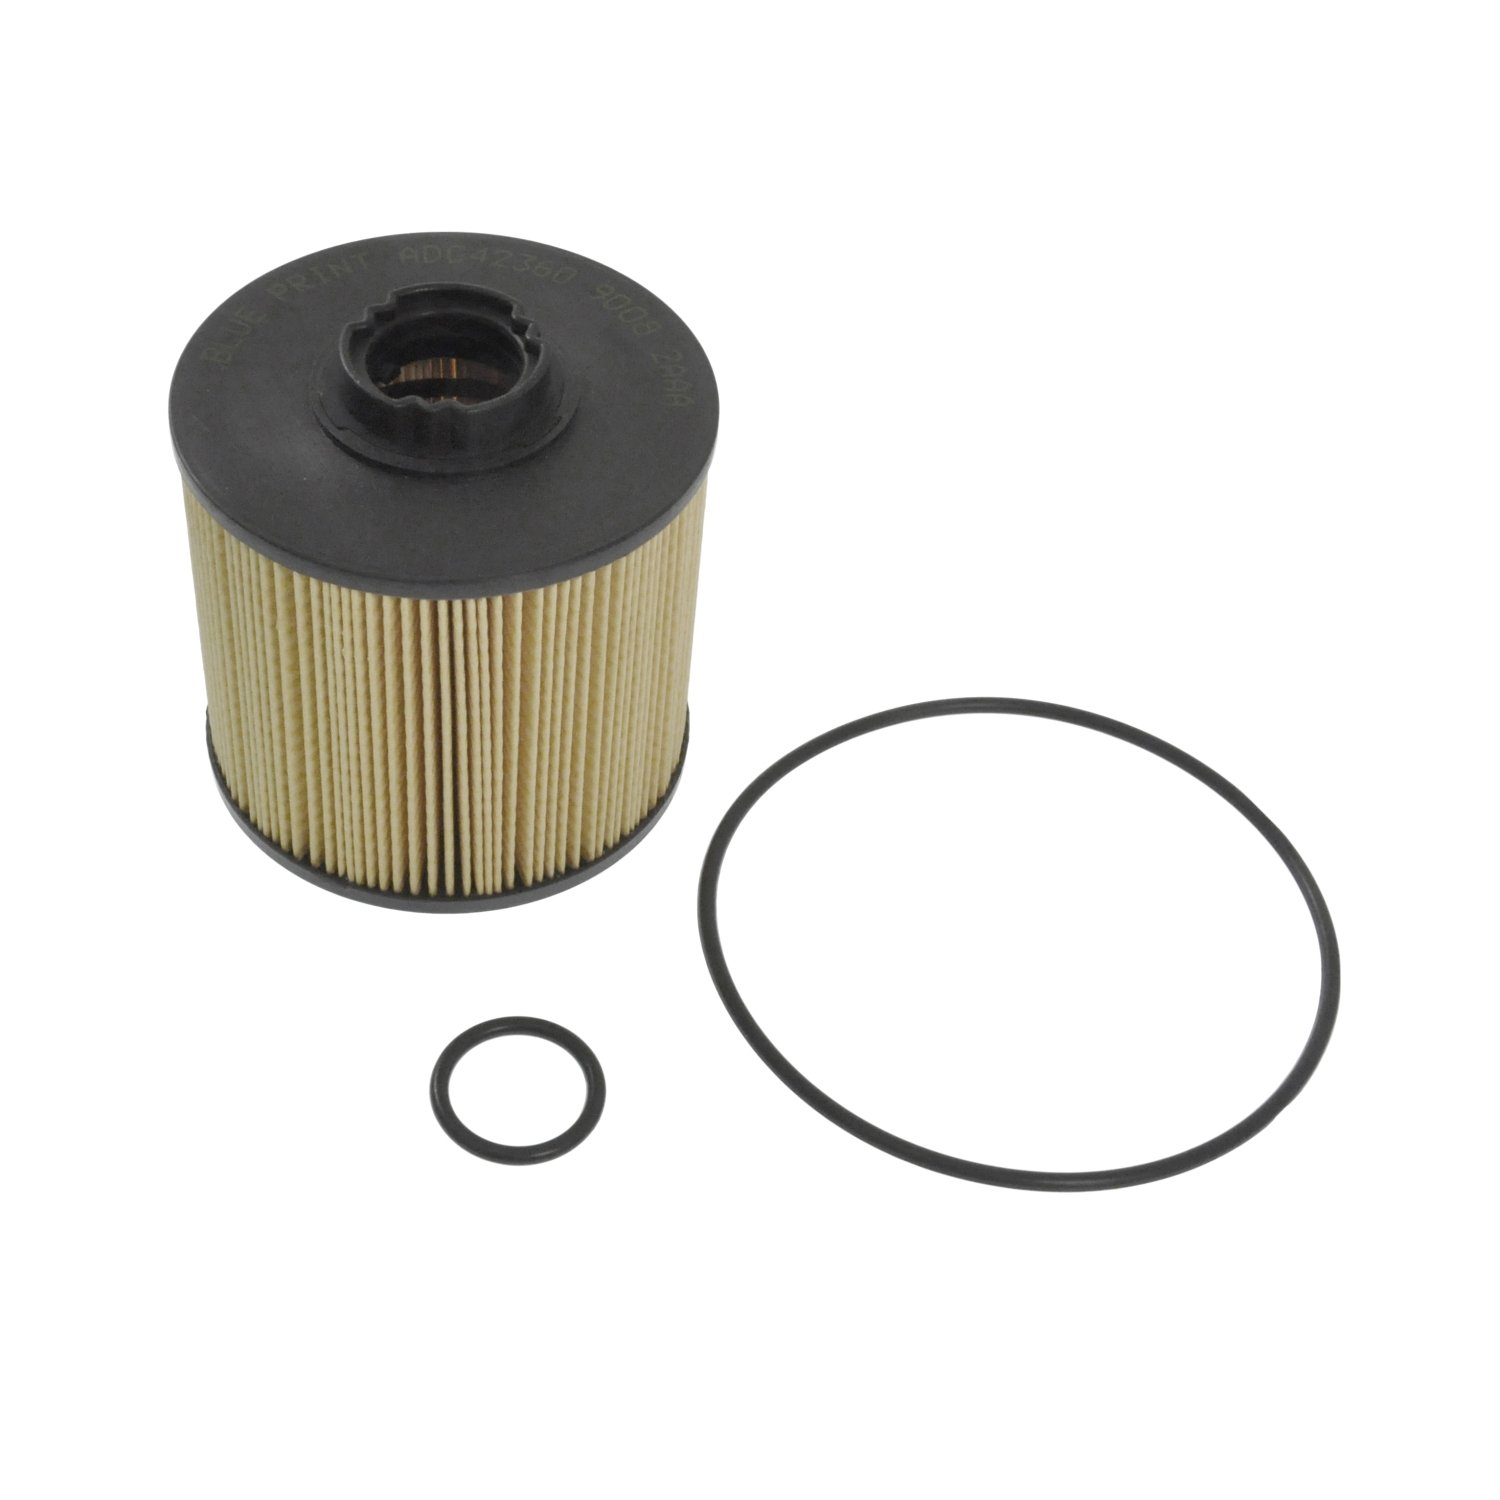 Blue Print ADC42360 fuel filter with seal rings - Pack of 1 Automotive Distributors Limited